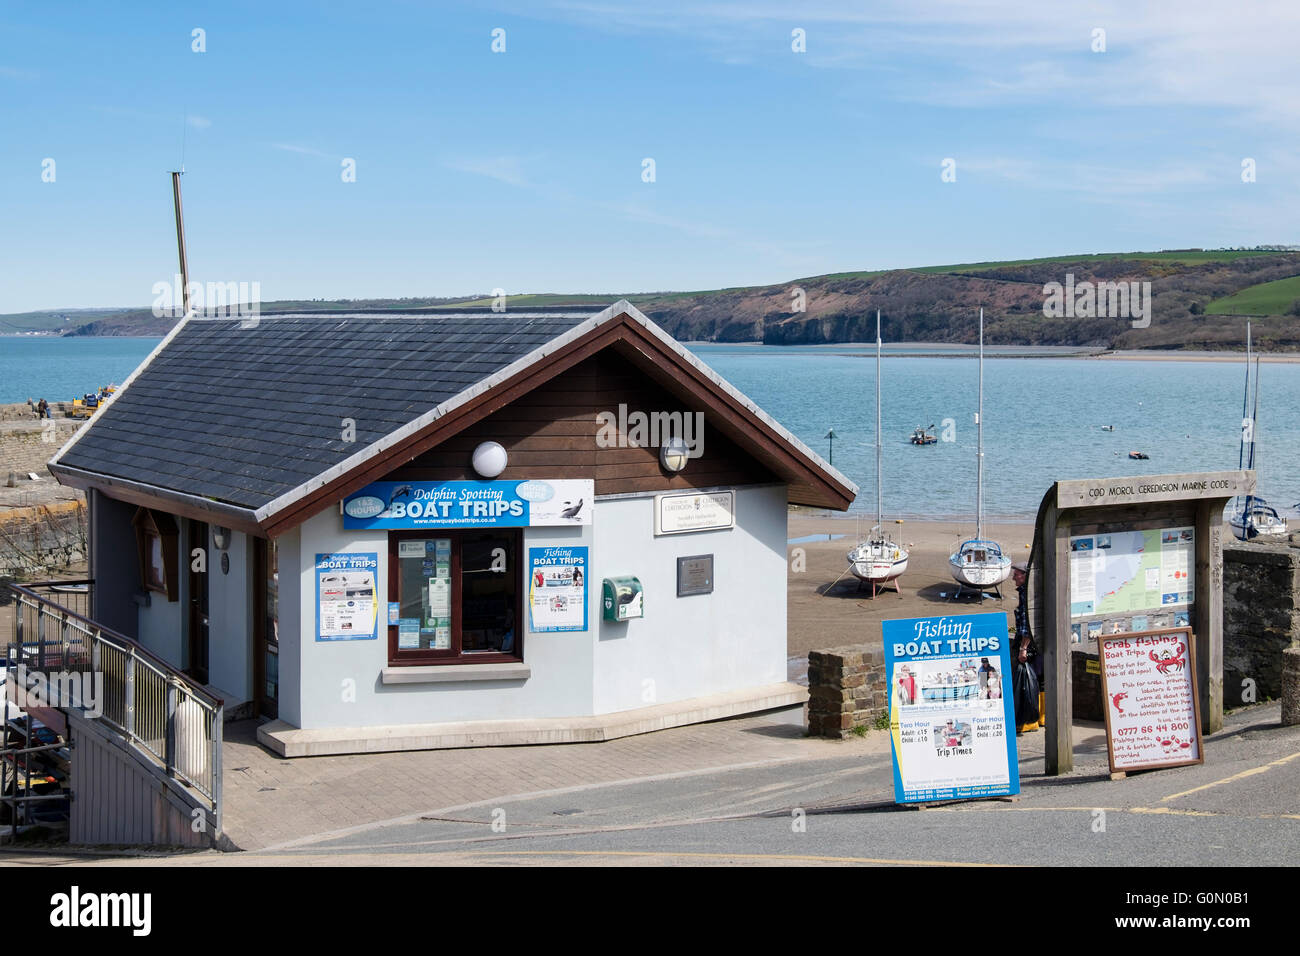 County Council Harbourmaster's Office advertising Dolphin spotting and fishing boat trips from harbour. New - Stock Image